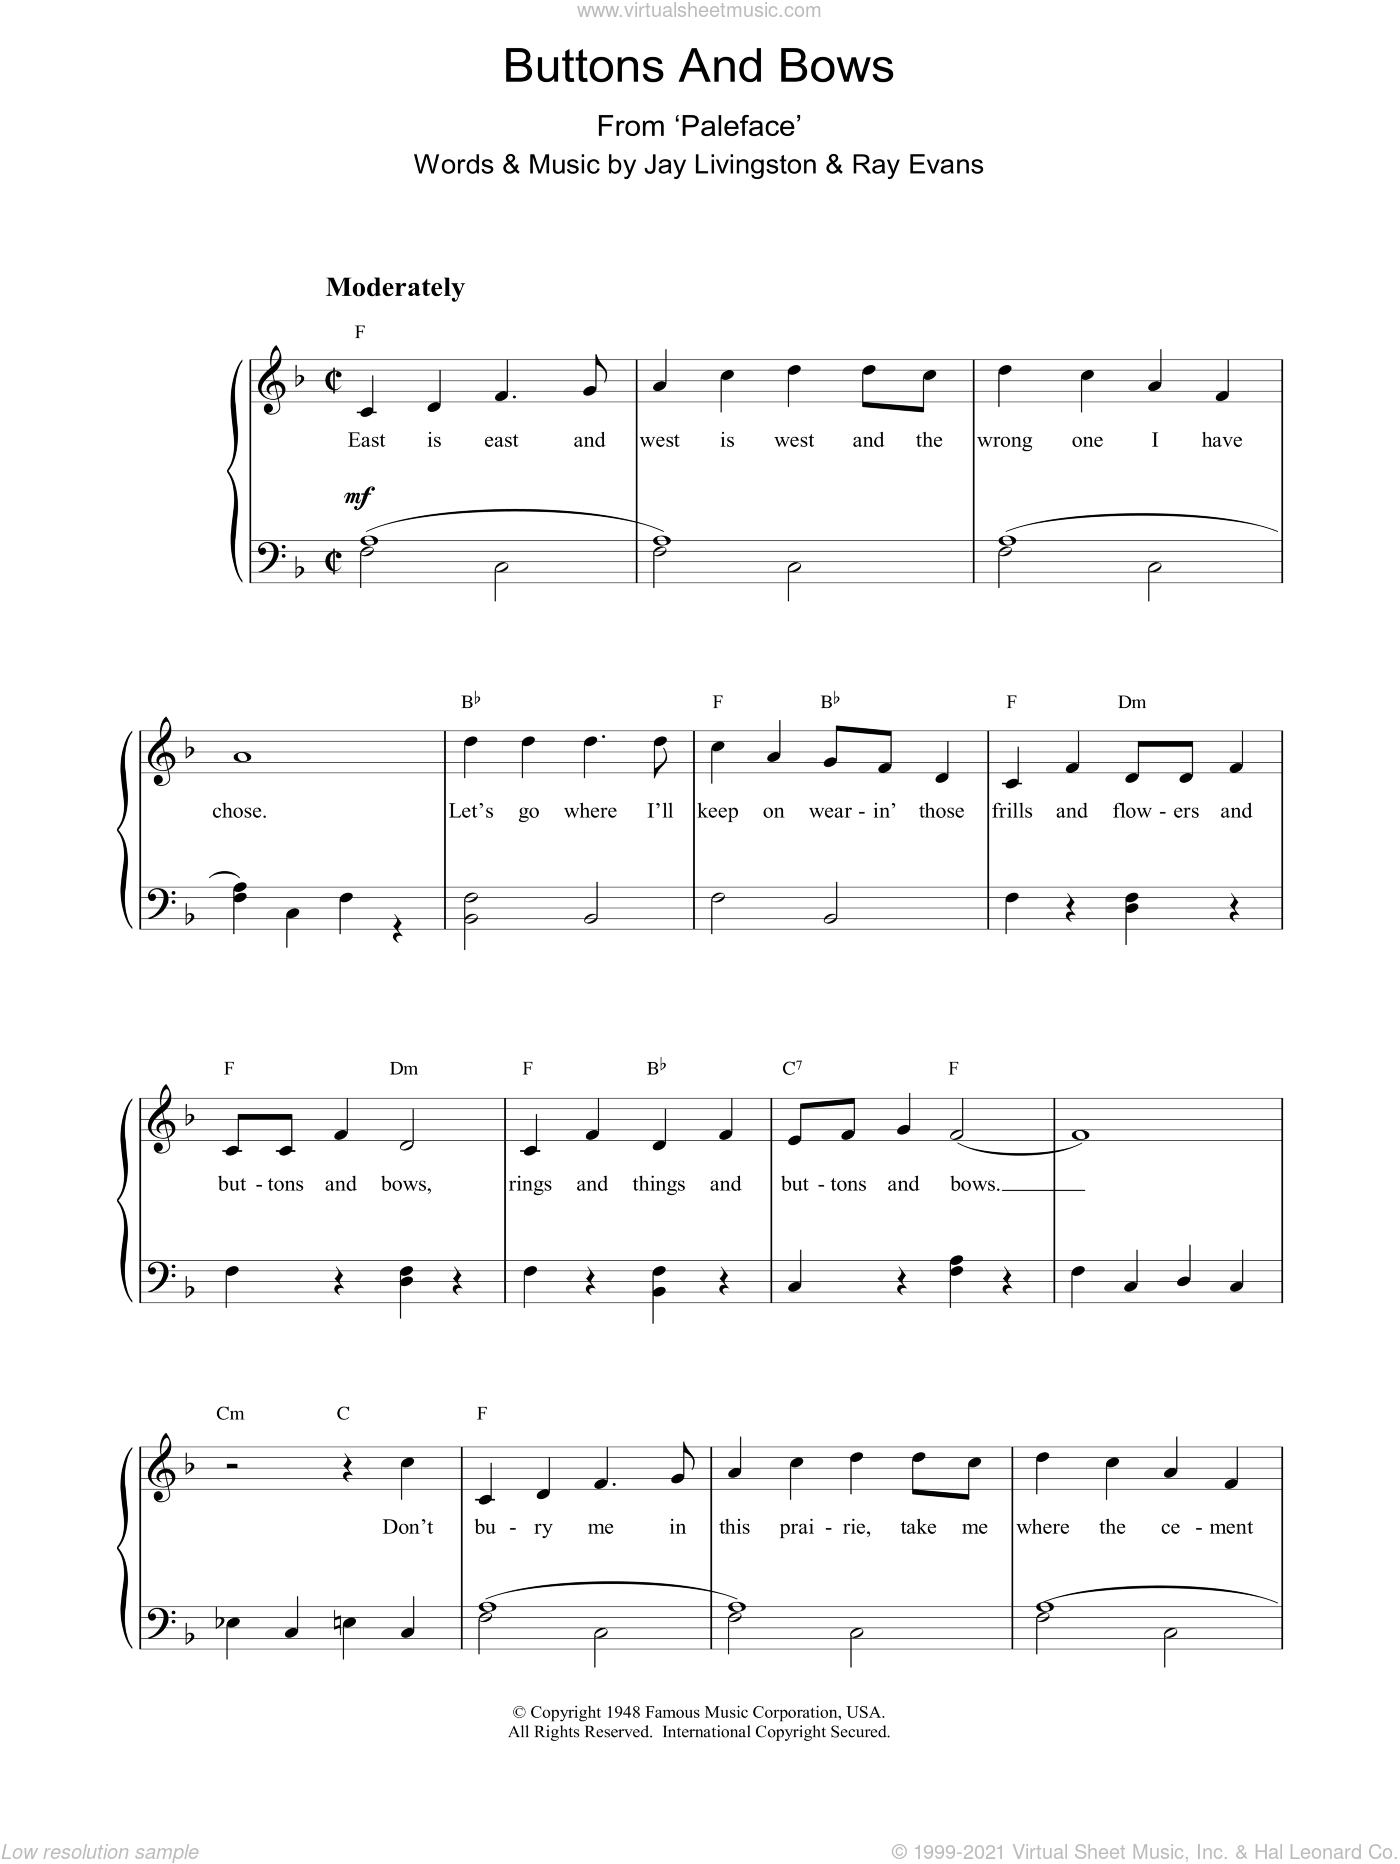 Buttons And Bows sheet music for piano solo by J & Evans, R Livingston